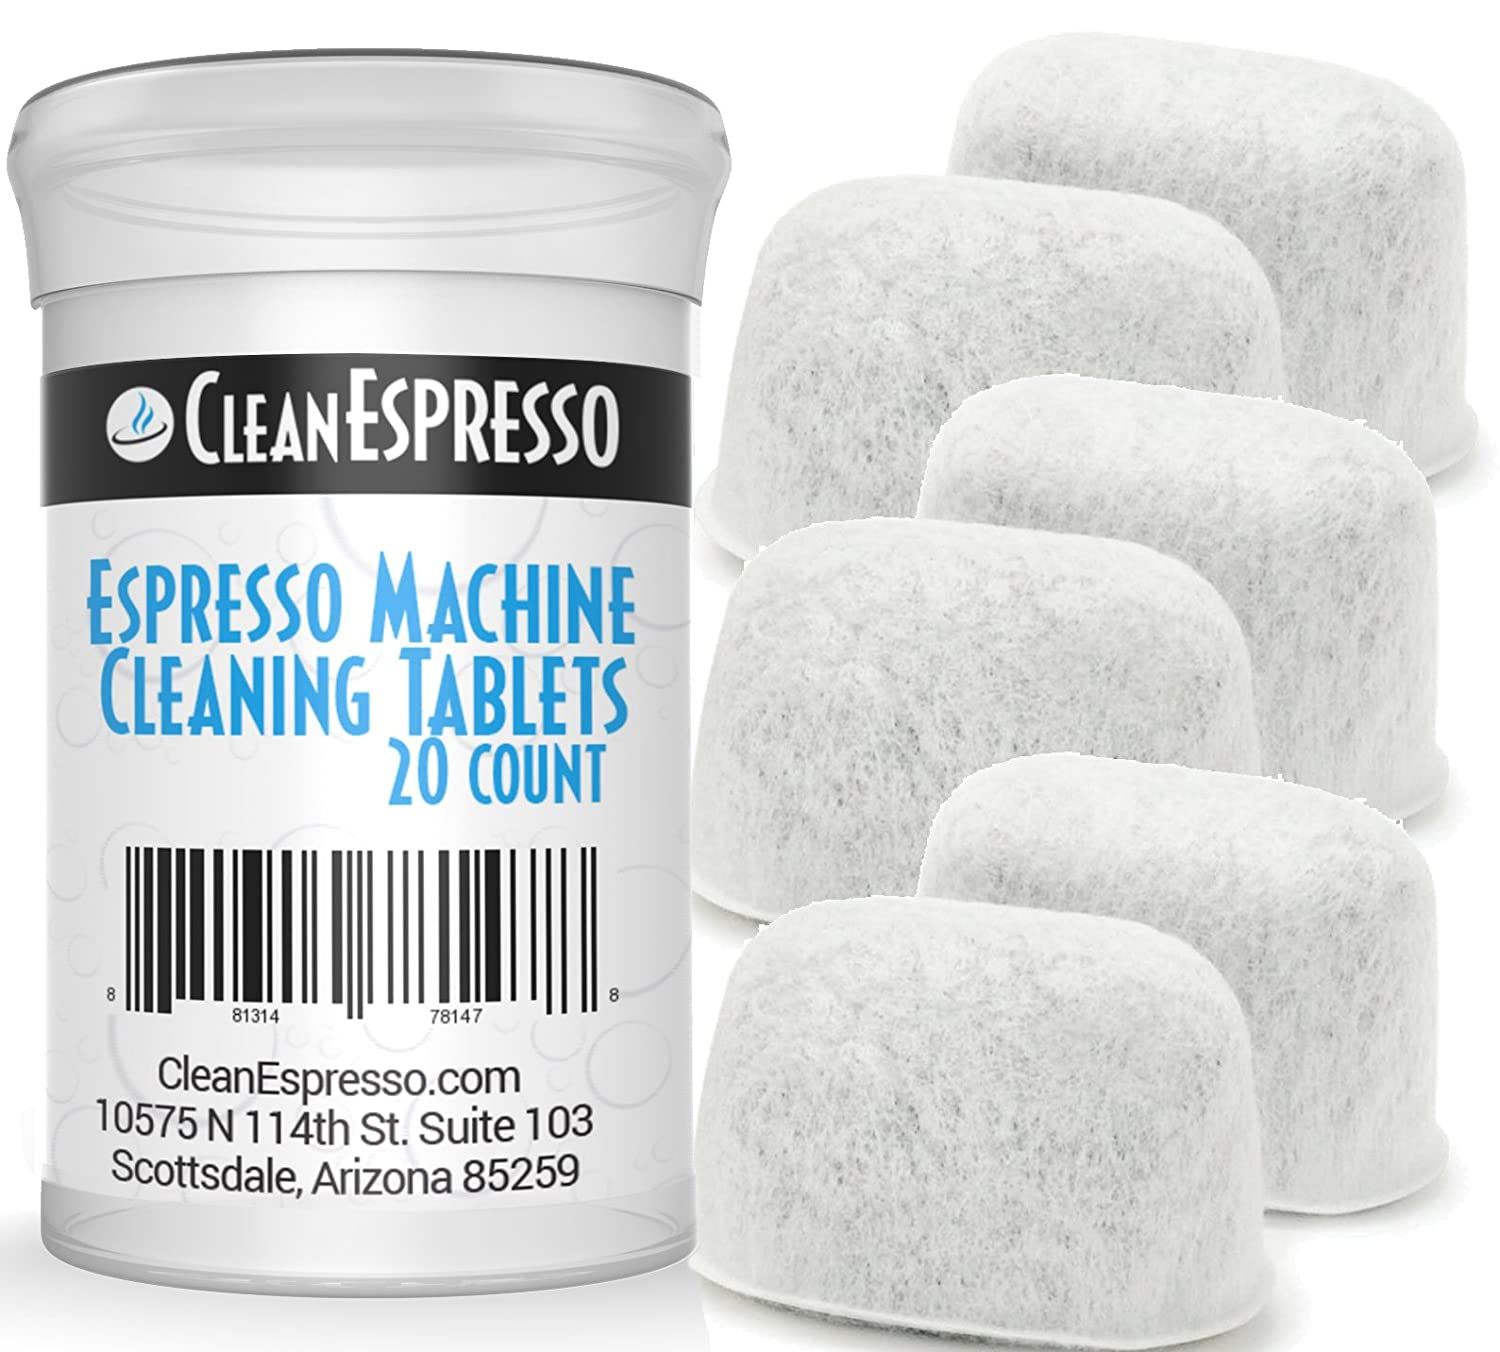 Breville Espresso Machine Cleaning Tablets and Filters - 2 Gram Espresso Cleaning Tablets - Replacement Water Filter - Espresso Machine Cleaner Accessories by CleanEspresso (20 Tablets + 6 Filters) 71icy1ImxNL